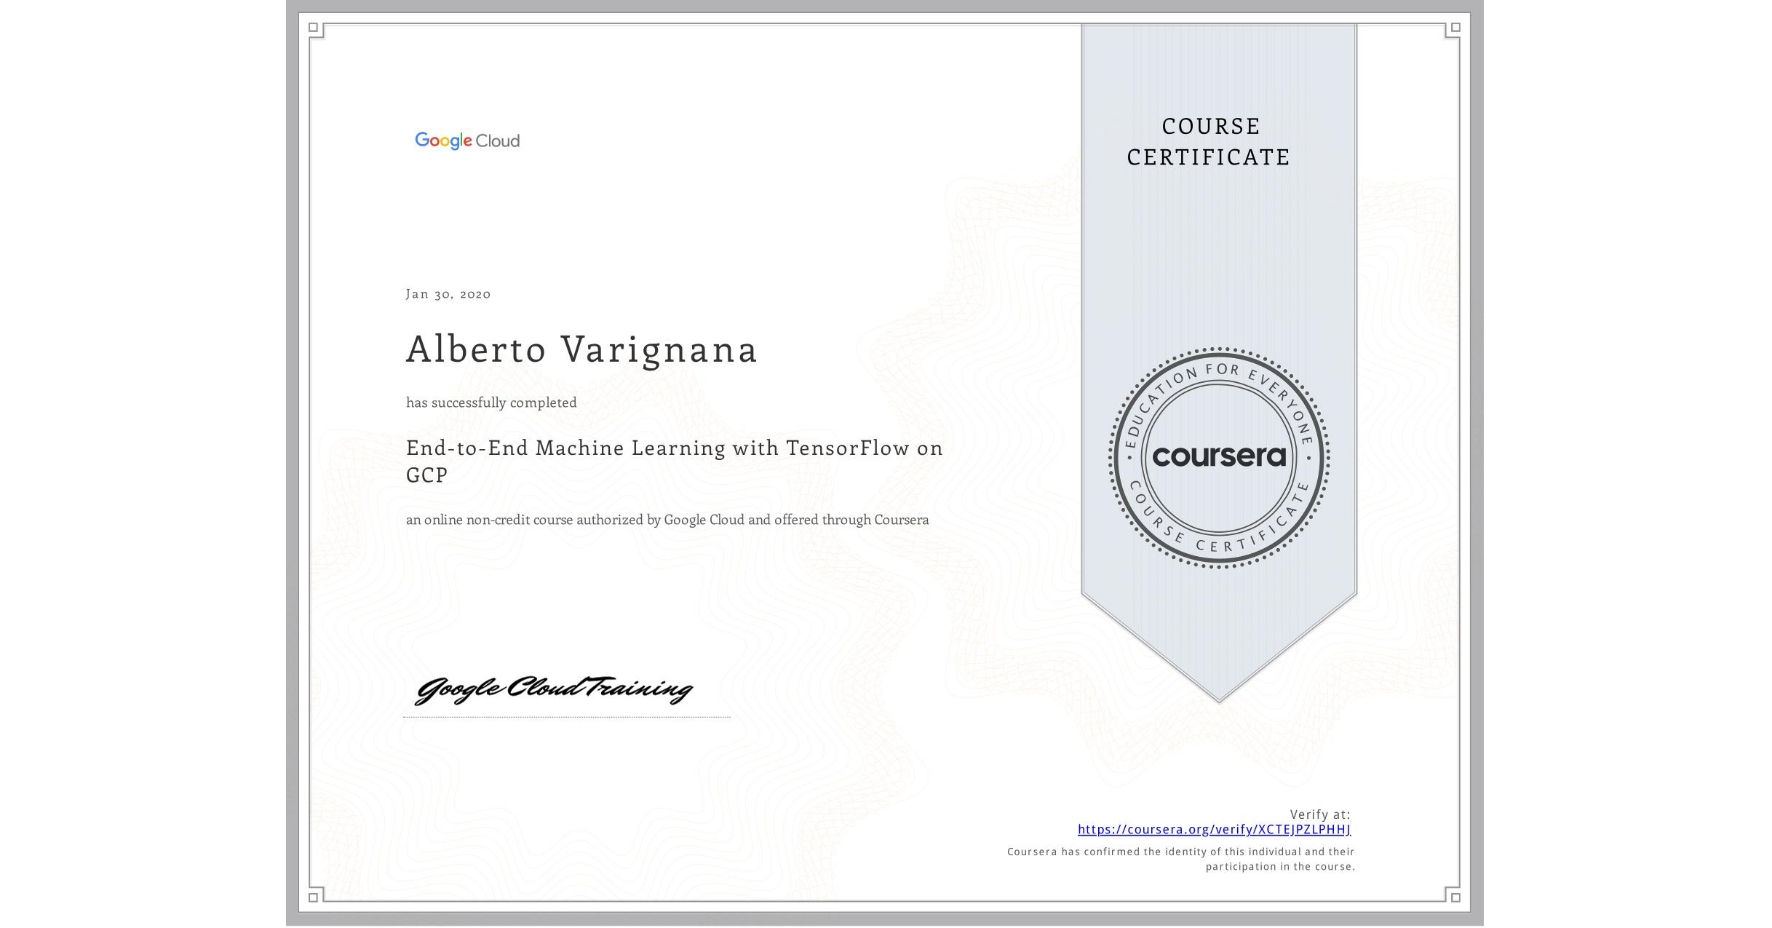 View certificate for Alberto Varignana, End-to-End Machine Learning with TensorFlow on GCP, an online non-credit course authorized by Google Cloud and offered through Coursera